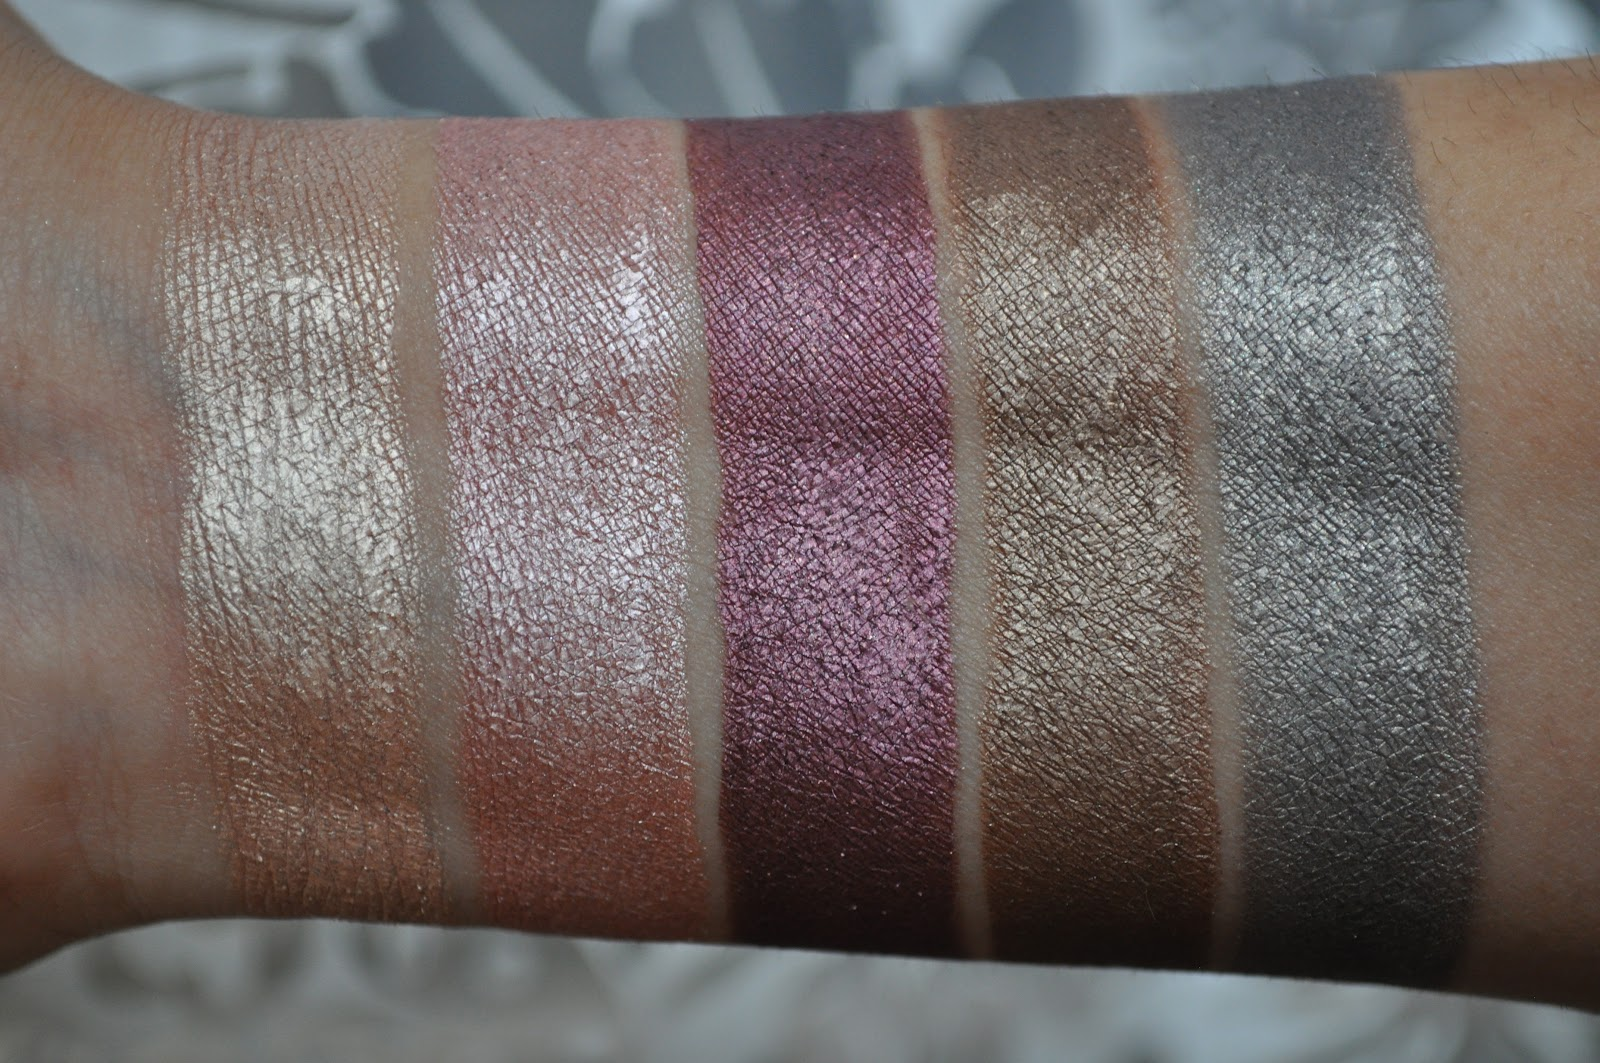 So Lonely in Gorgeous: Make Up For Ever Aqua Cream Swatches